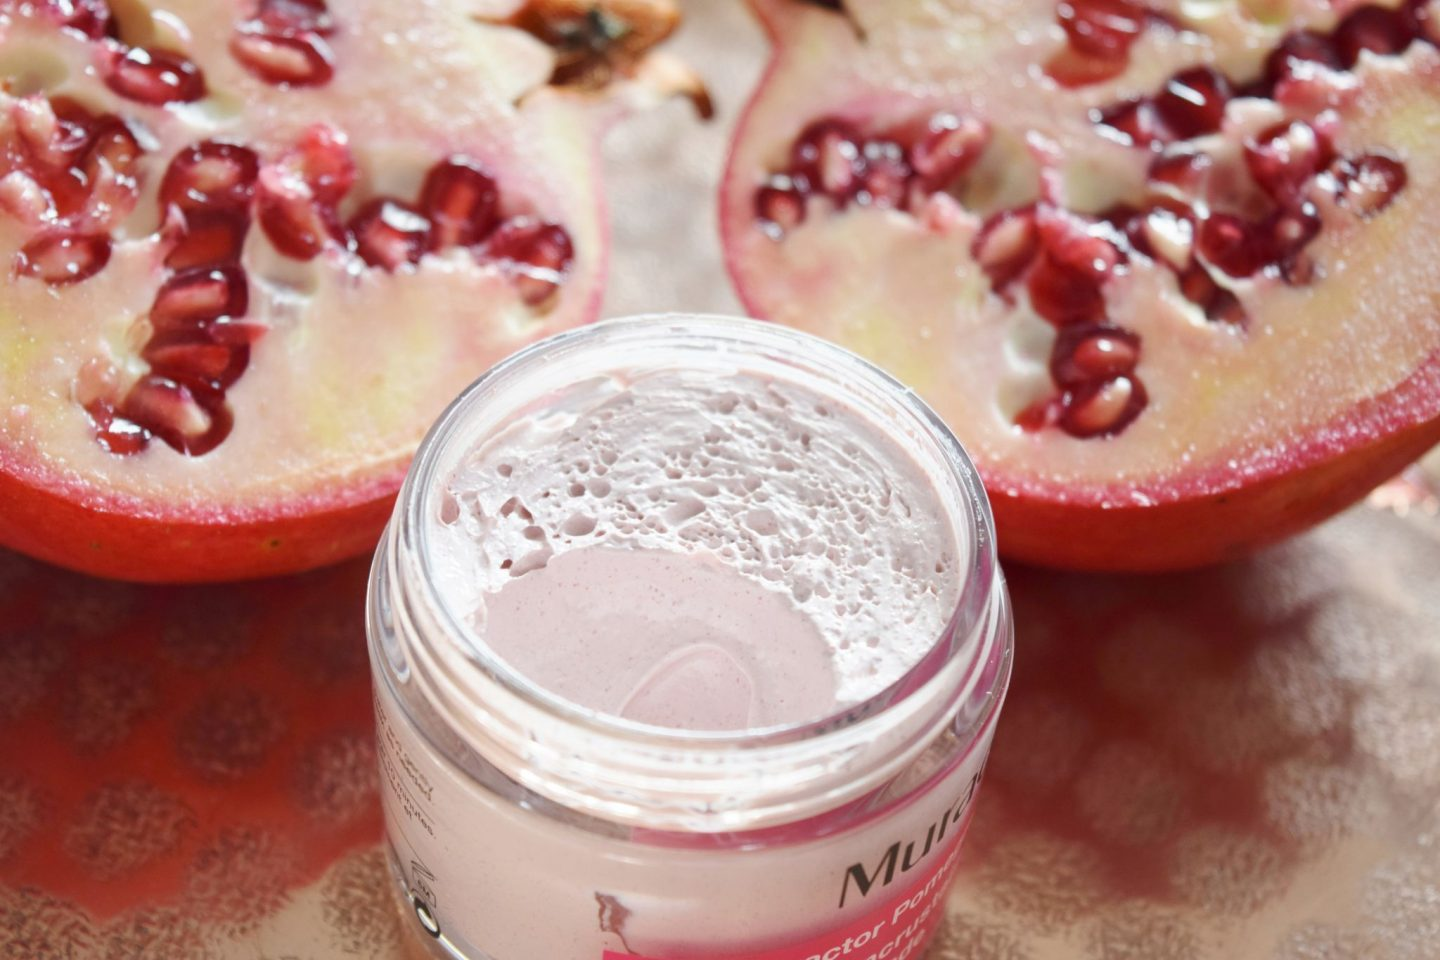 Murad Pore Extractor Pomegranate Mask formula